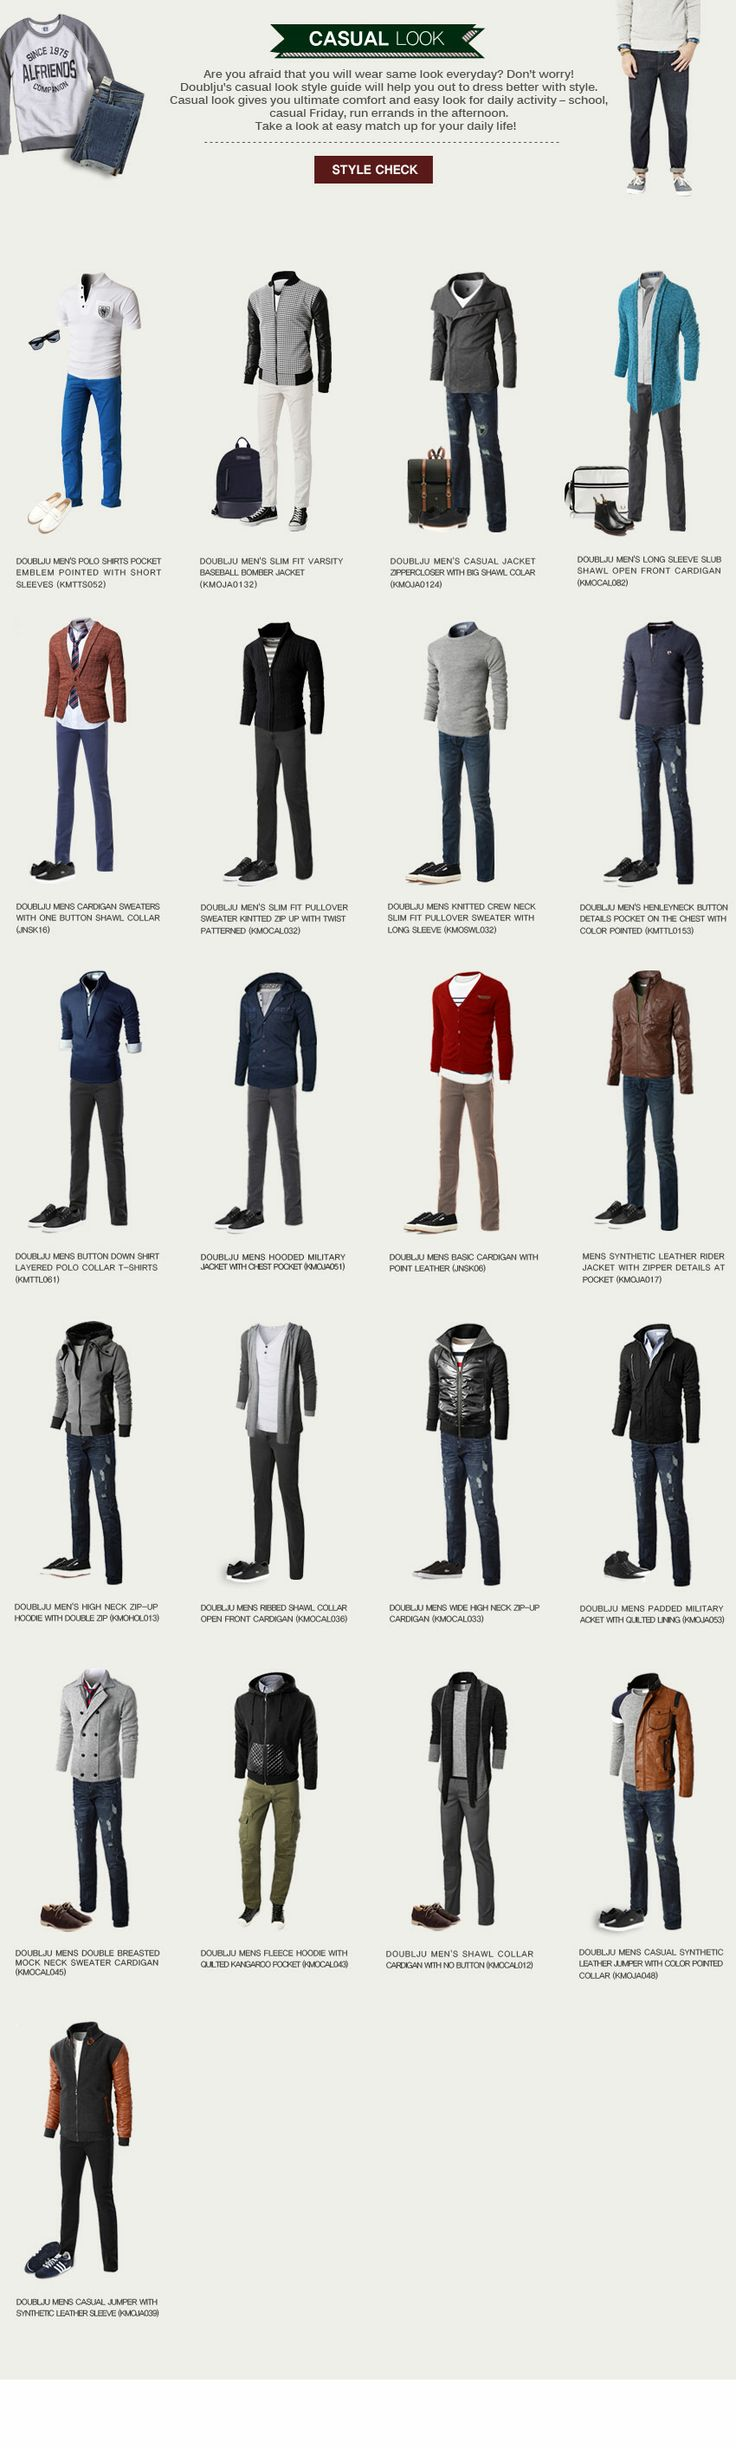 20+ Casual Outfit Ideas for Men [Infographic]